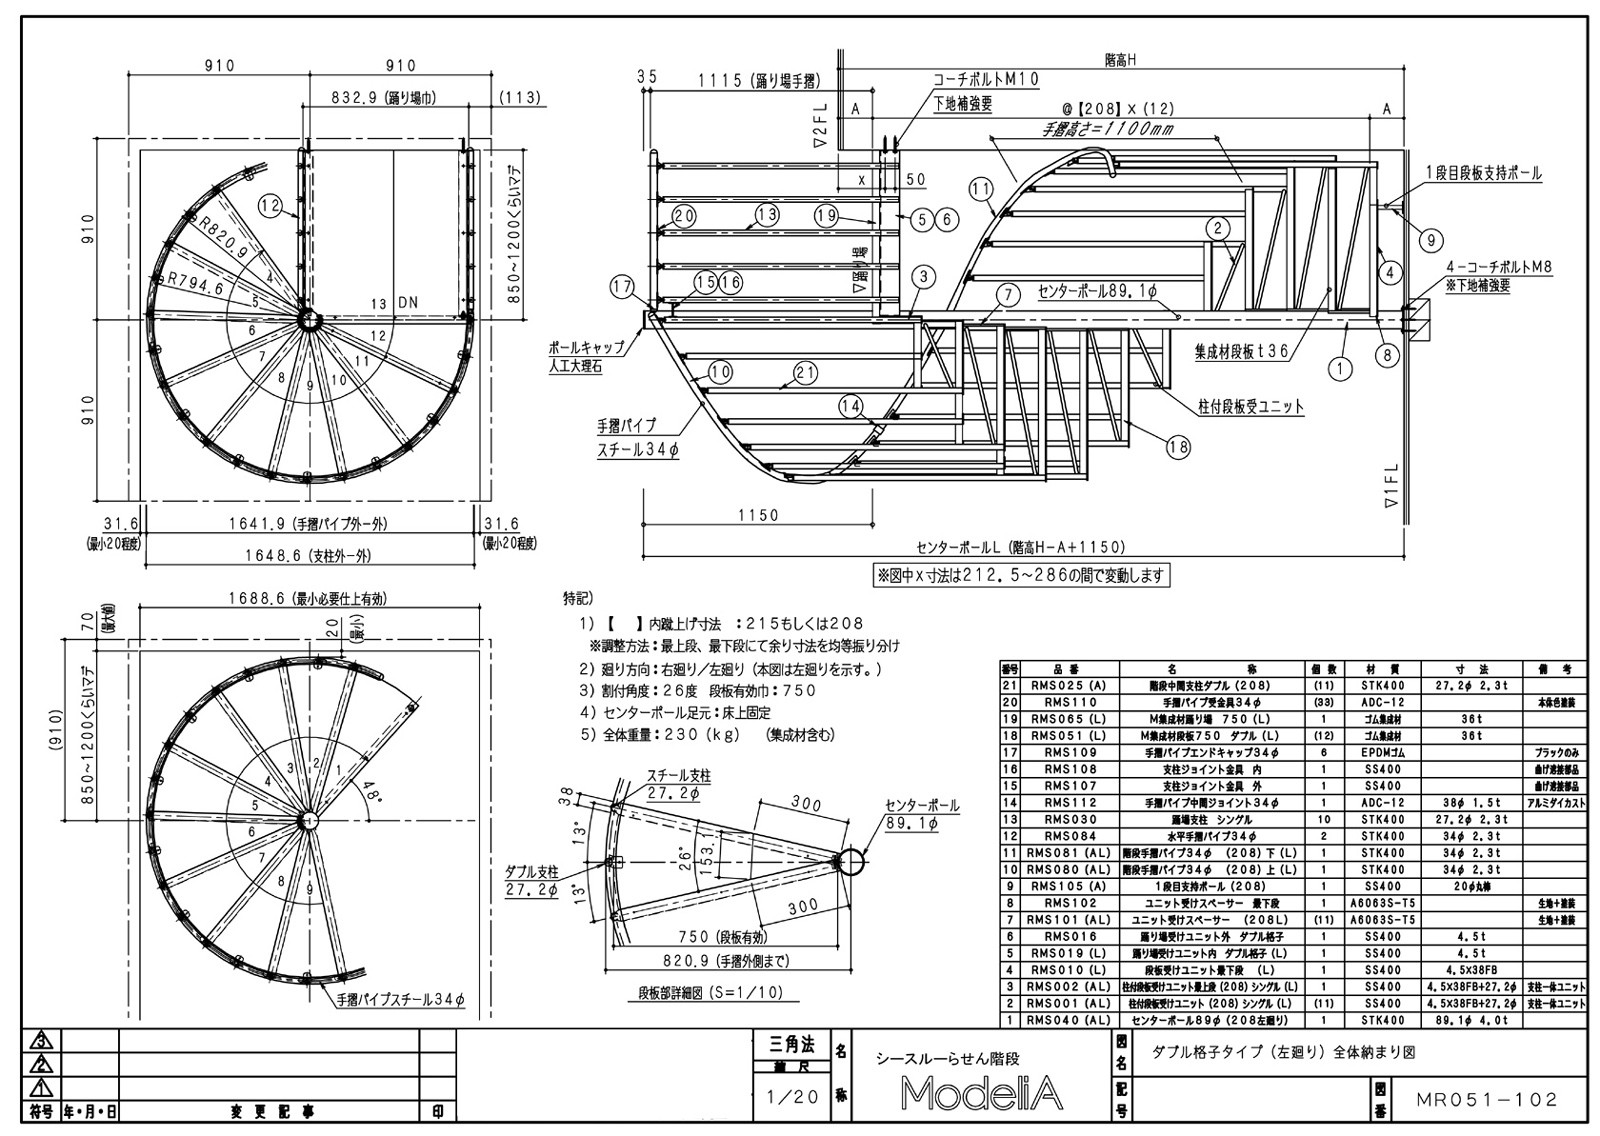 Best ideas about Spiral Staircase Dimensions . Save or Pin t up2007 Now.